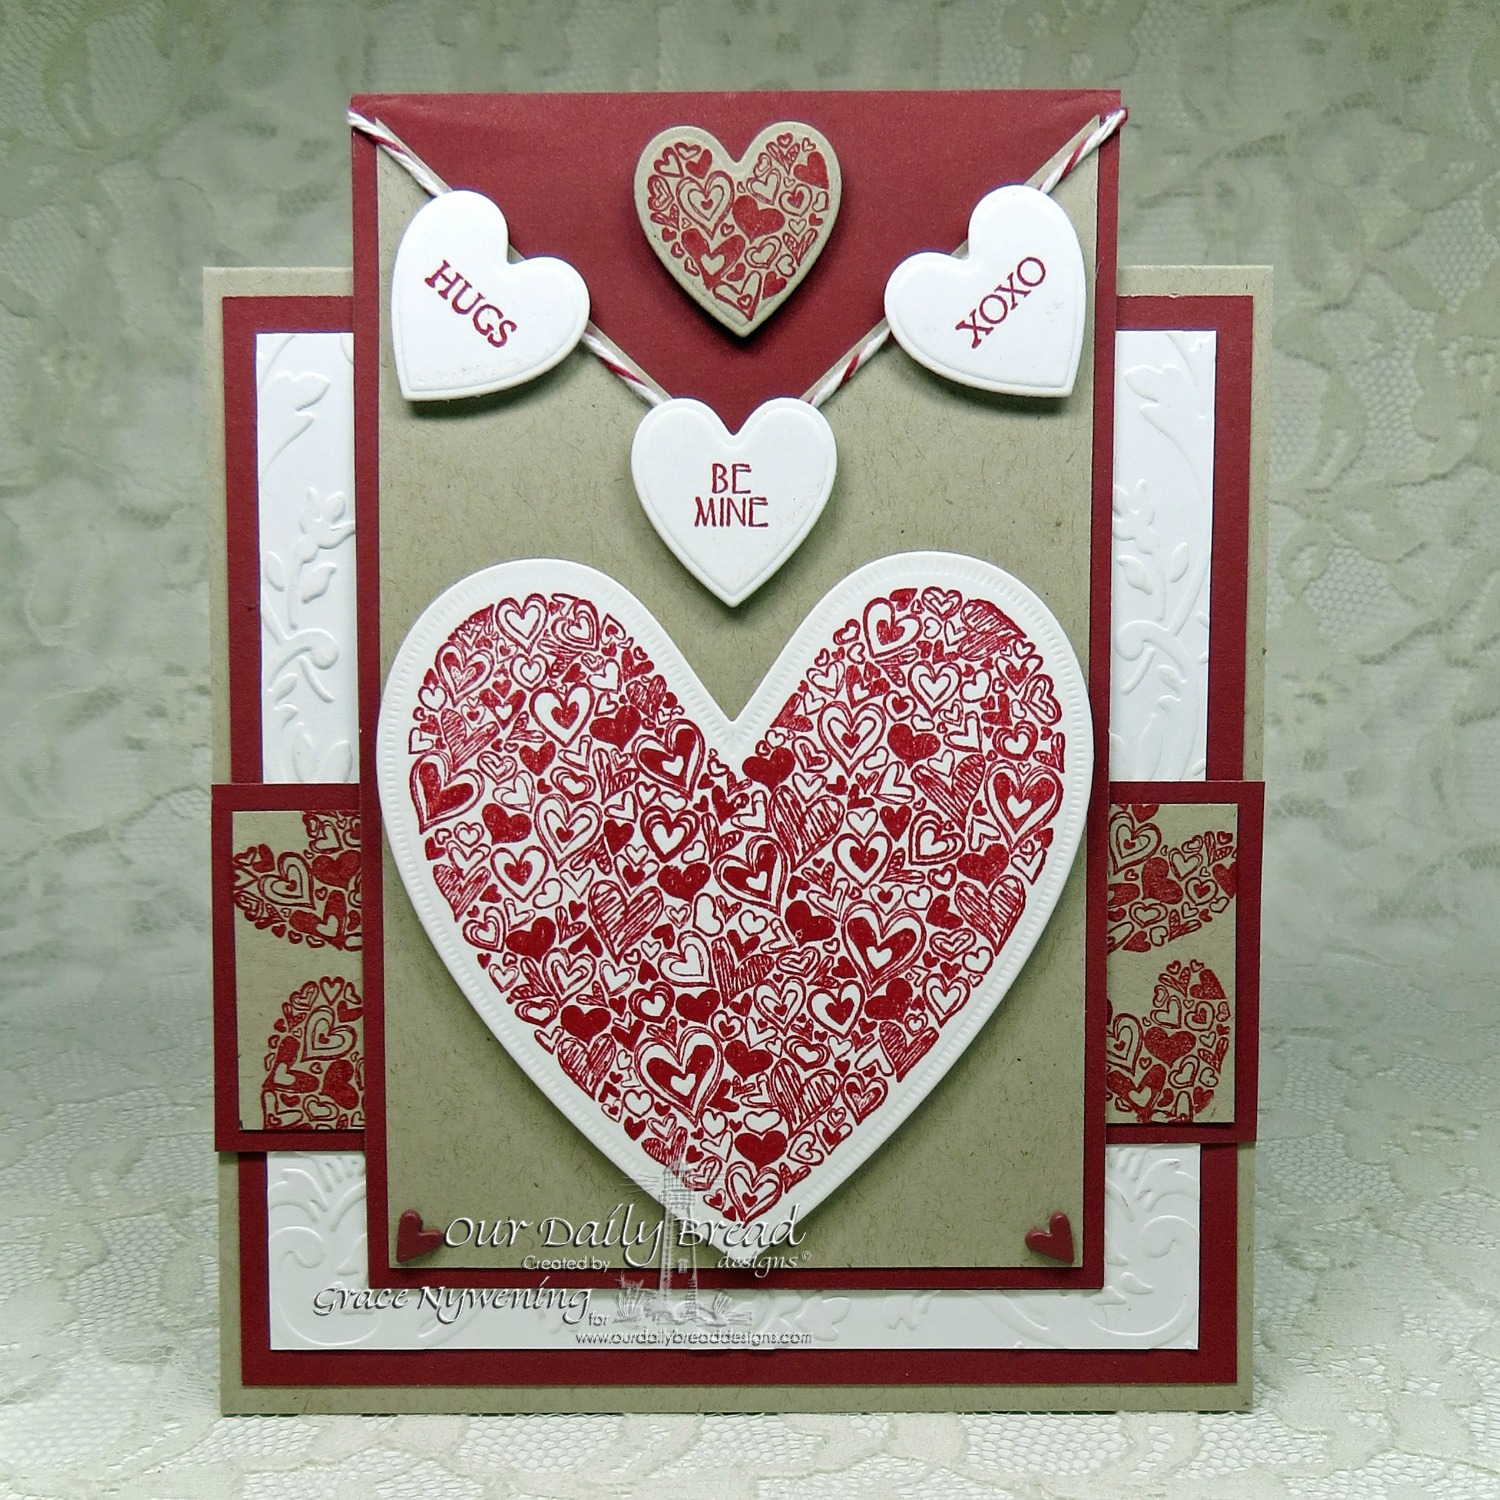 Stamps - Our Daily Bread Designs Heart of Joy, Clean Heart, Be Mine, ODBD Custom Ornate Hearts Die